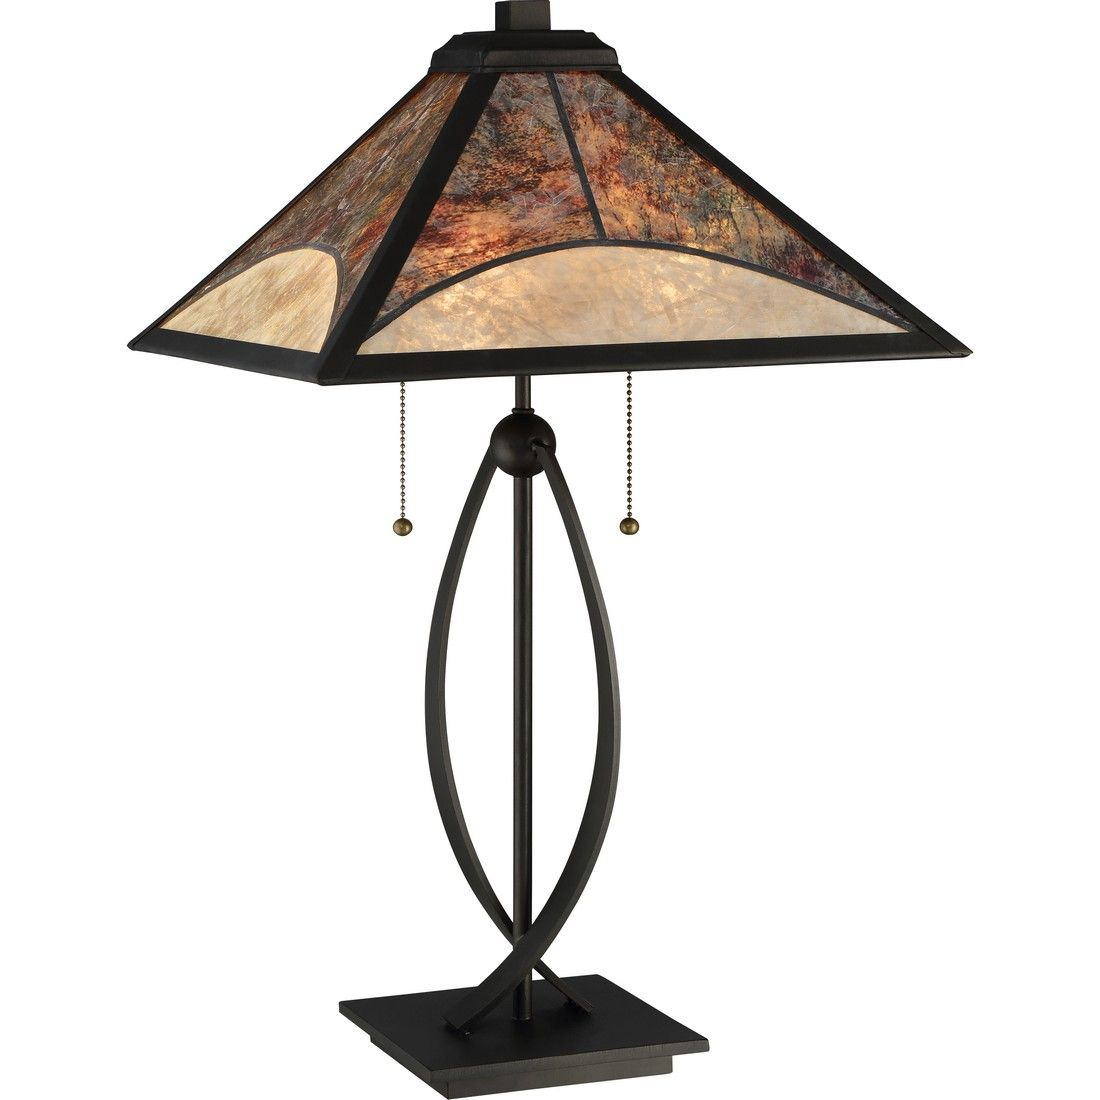 Quoizel Mica 24 75 2 Light Mica Shade Table Lamp In Dark Bronze